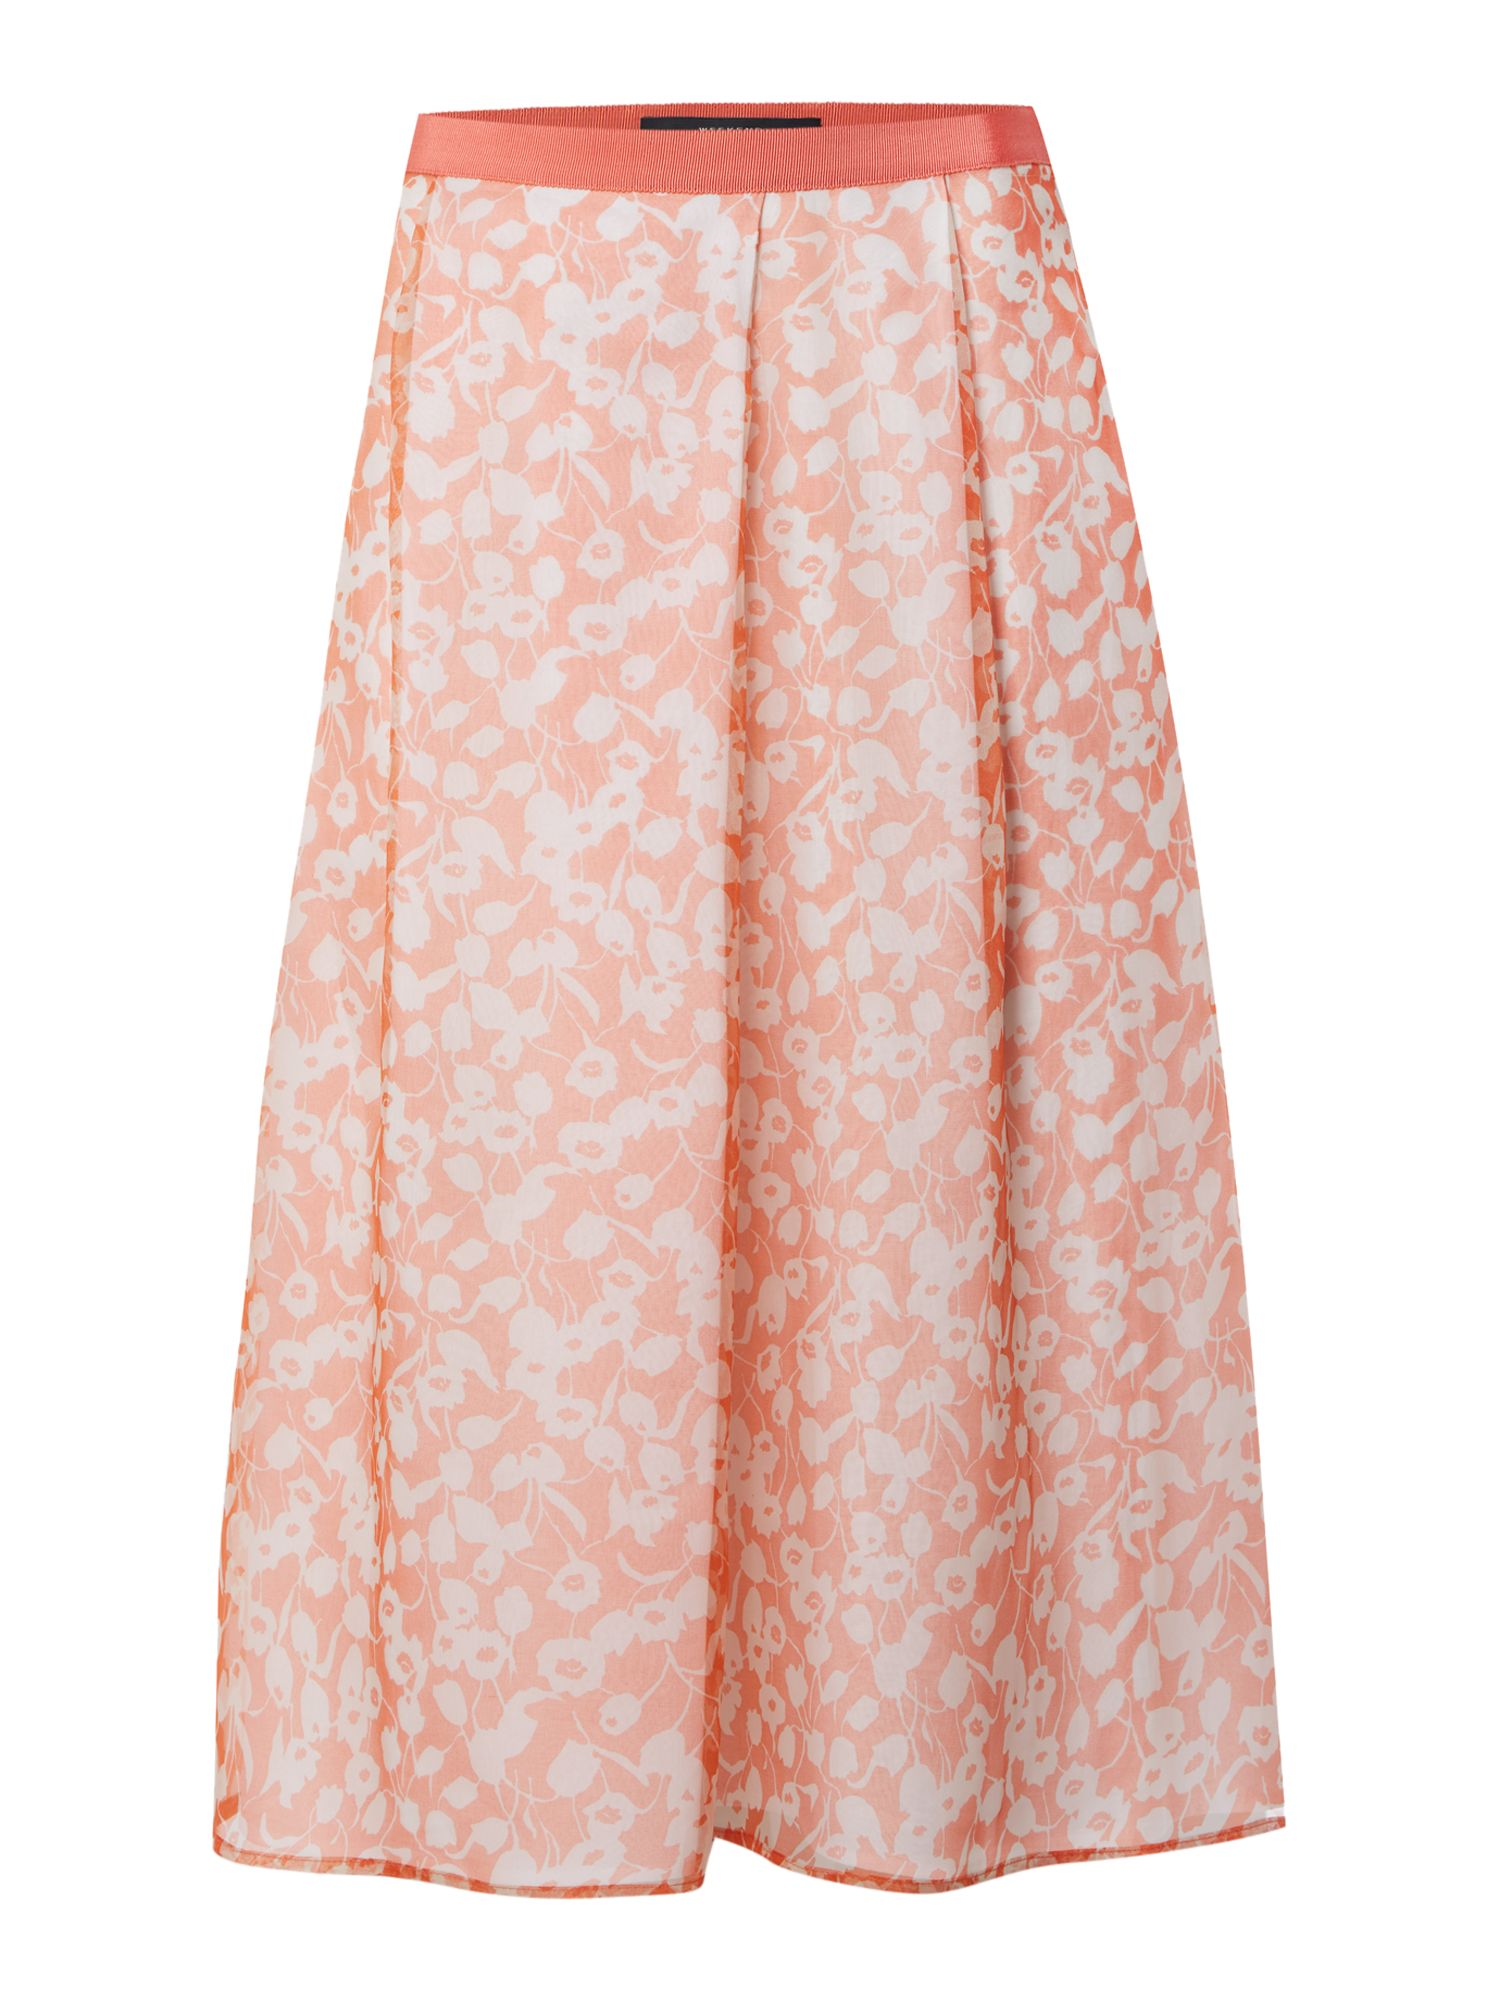 Max Mara Weekend Lindsey pleated floral silk skirt, Salmon